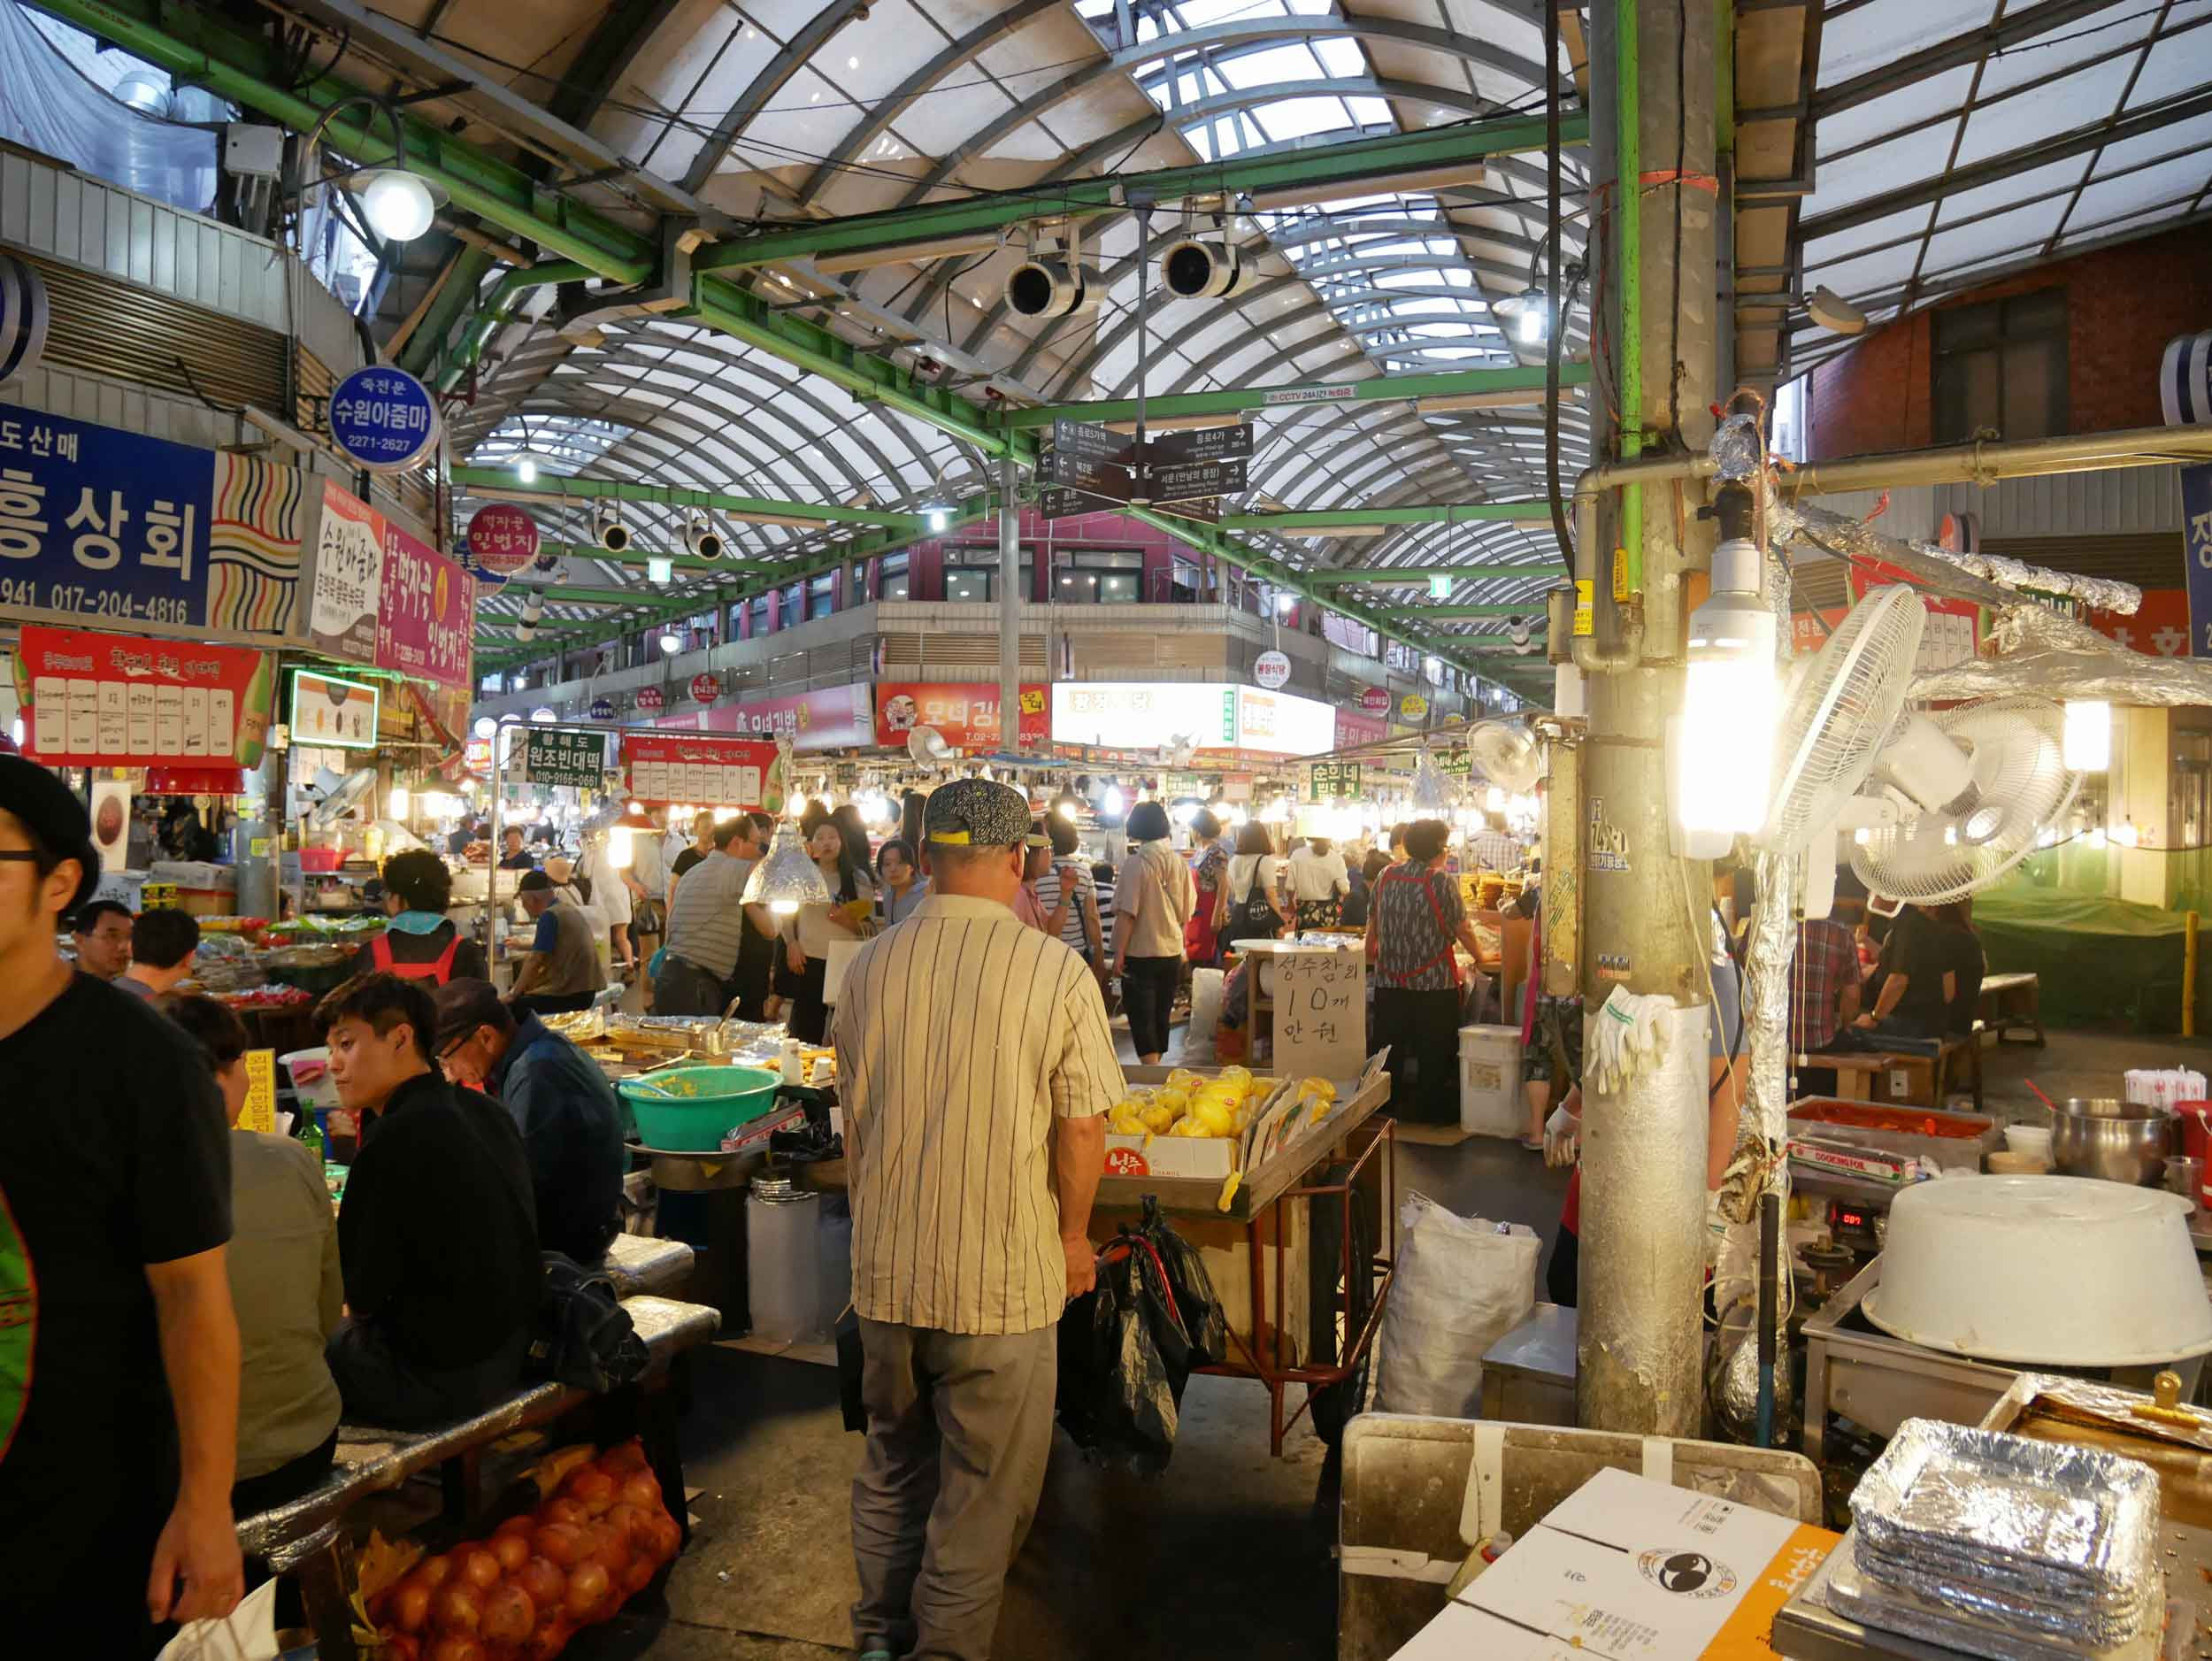 On our first evening, we made our to the famous Gwangjang Market, which was full and busy of both shoppers and diners.